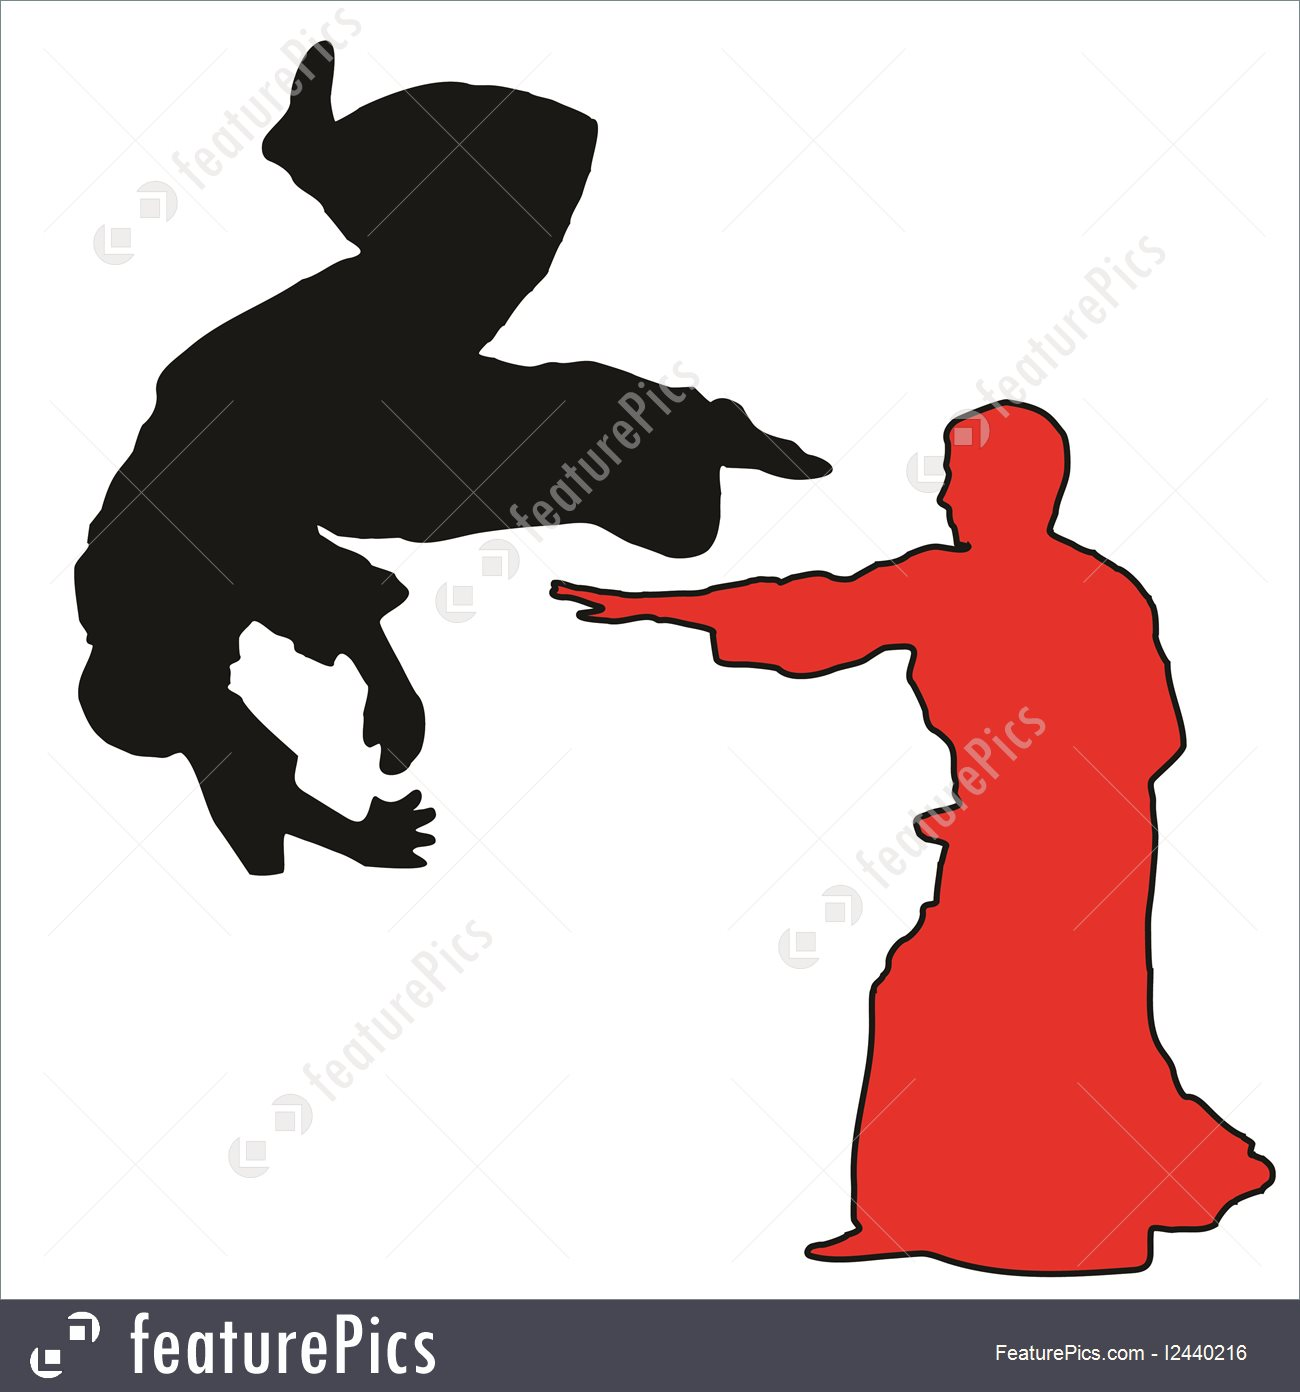 MARTIAL ARTS - AIKIDO u2014 Stock Vector #2759597